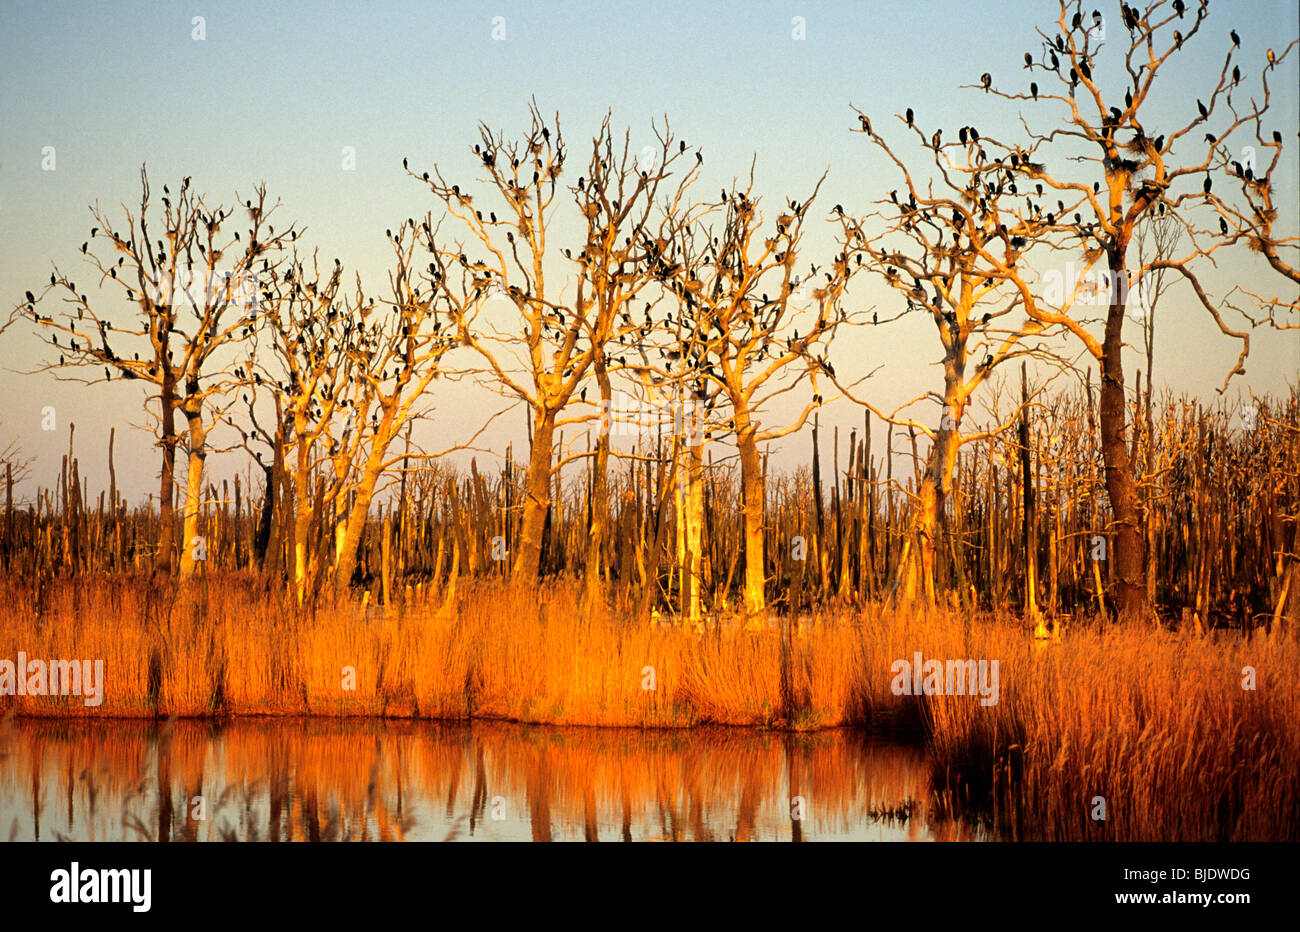 Colony of Great Cormorants in the peat bog nature-sanctuary of Anklam, Germany - Stock Image